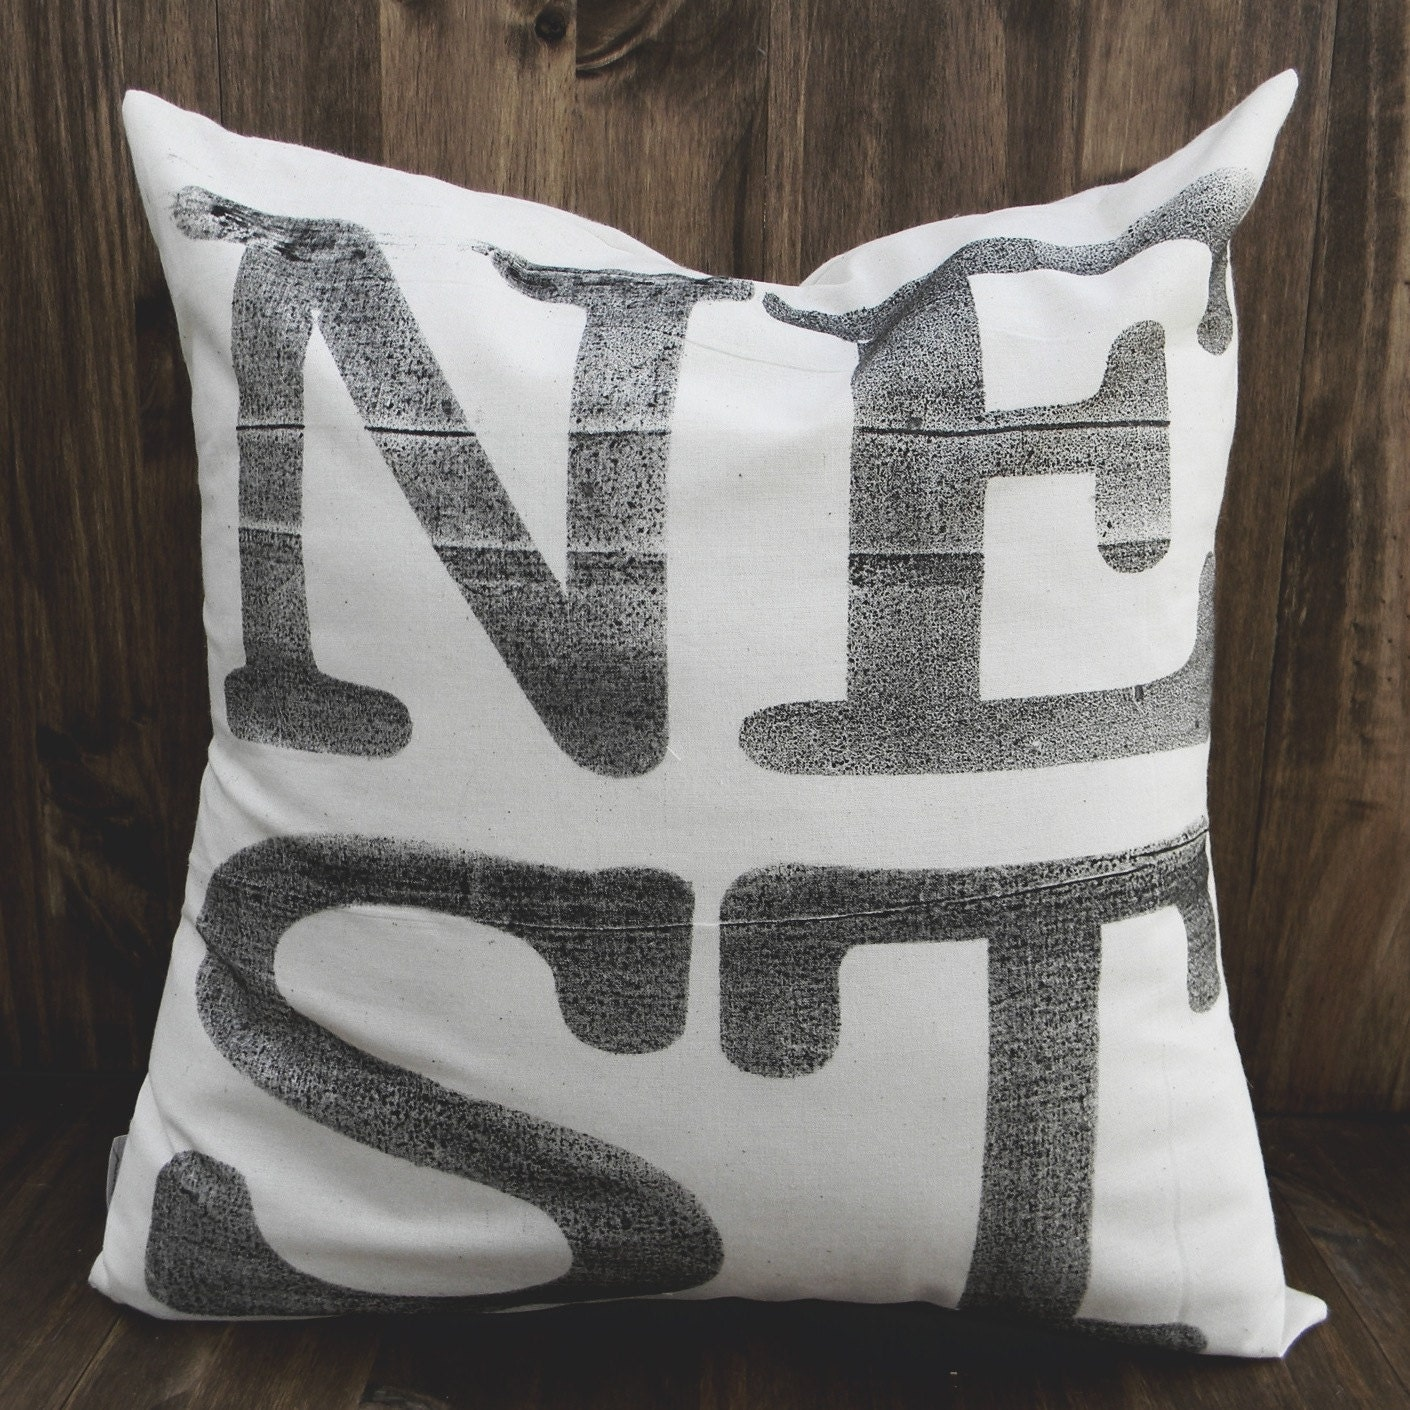 NEST 4 Letter Word 16 x 16 Pillow Cover, home decor, family gift, new family, house warming, love, cozy